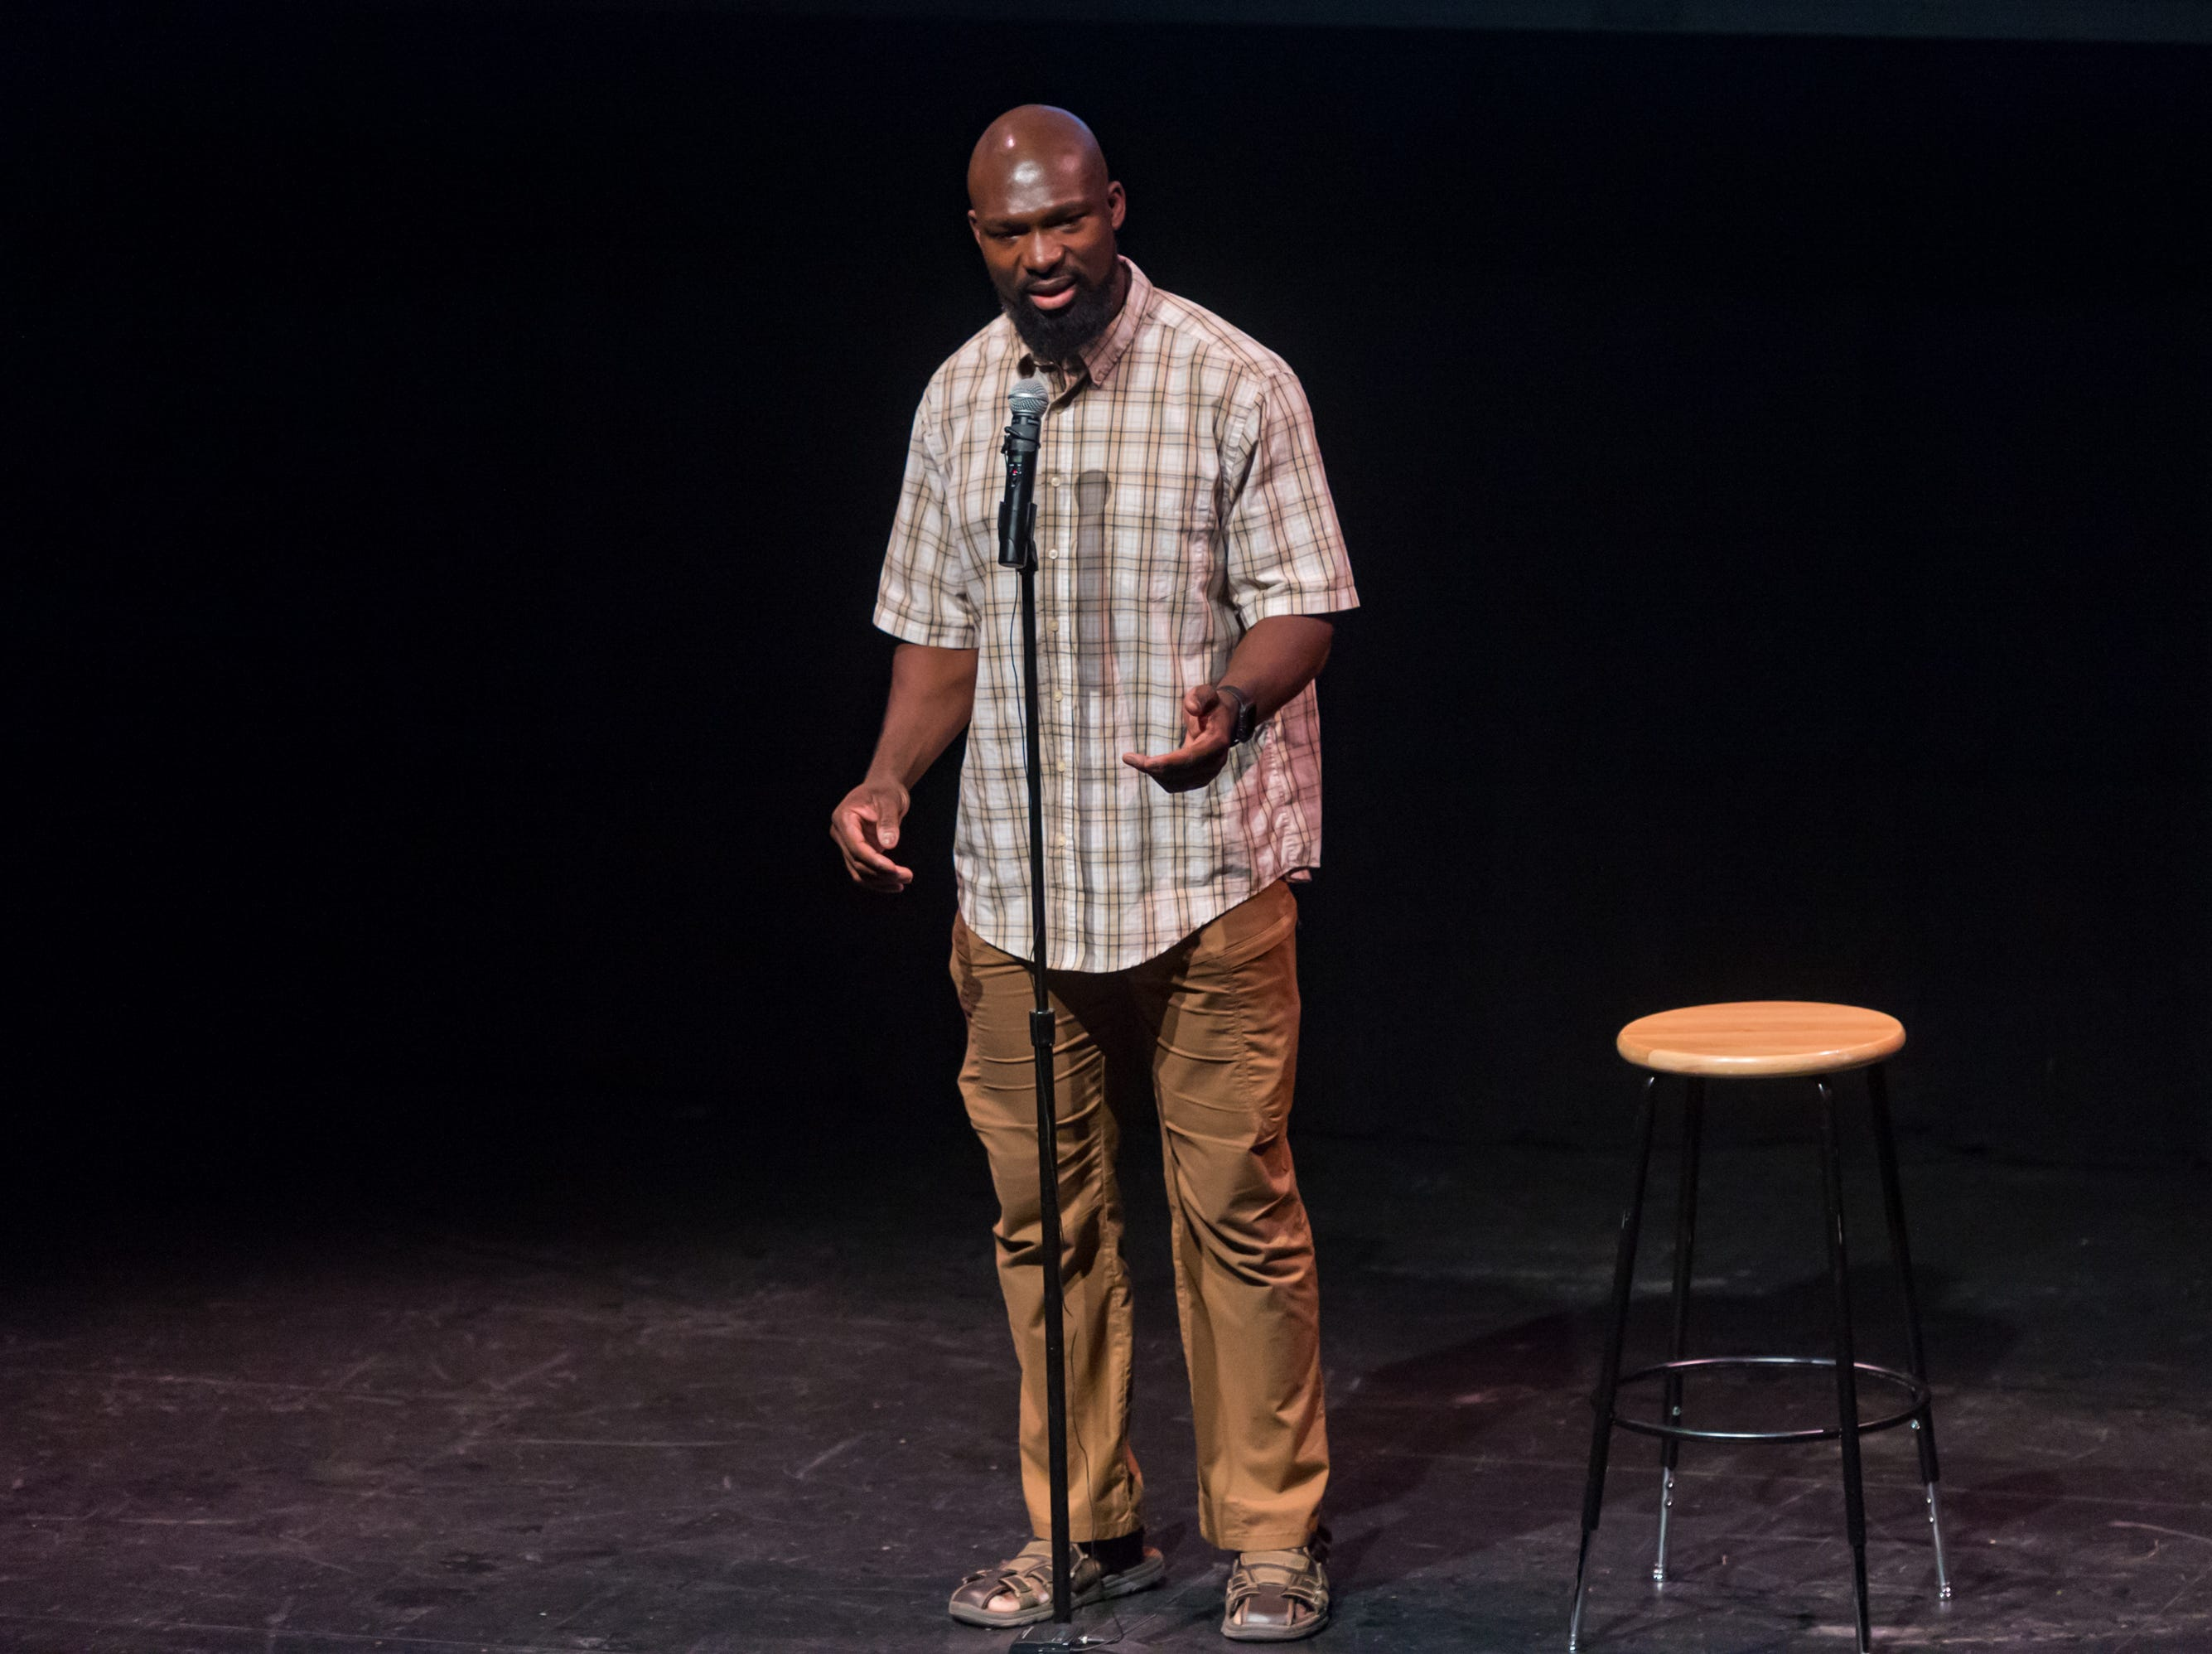 Eugene Kwarteng speaking at the Lafayette Storytellers Project - Back to school. Tuesday, Sept. 18, 2018.